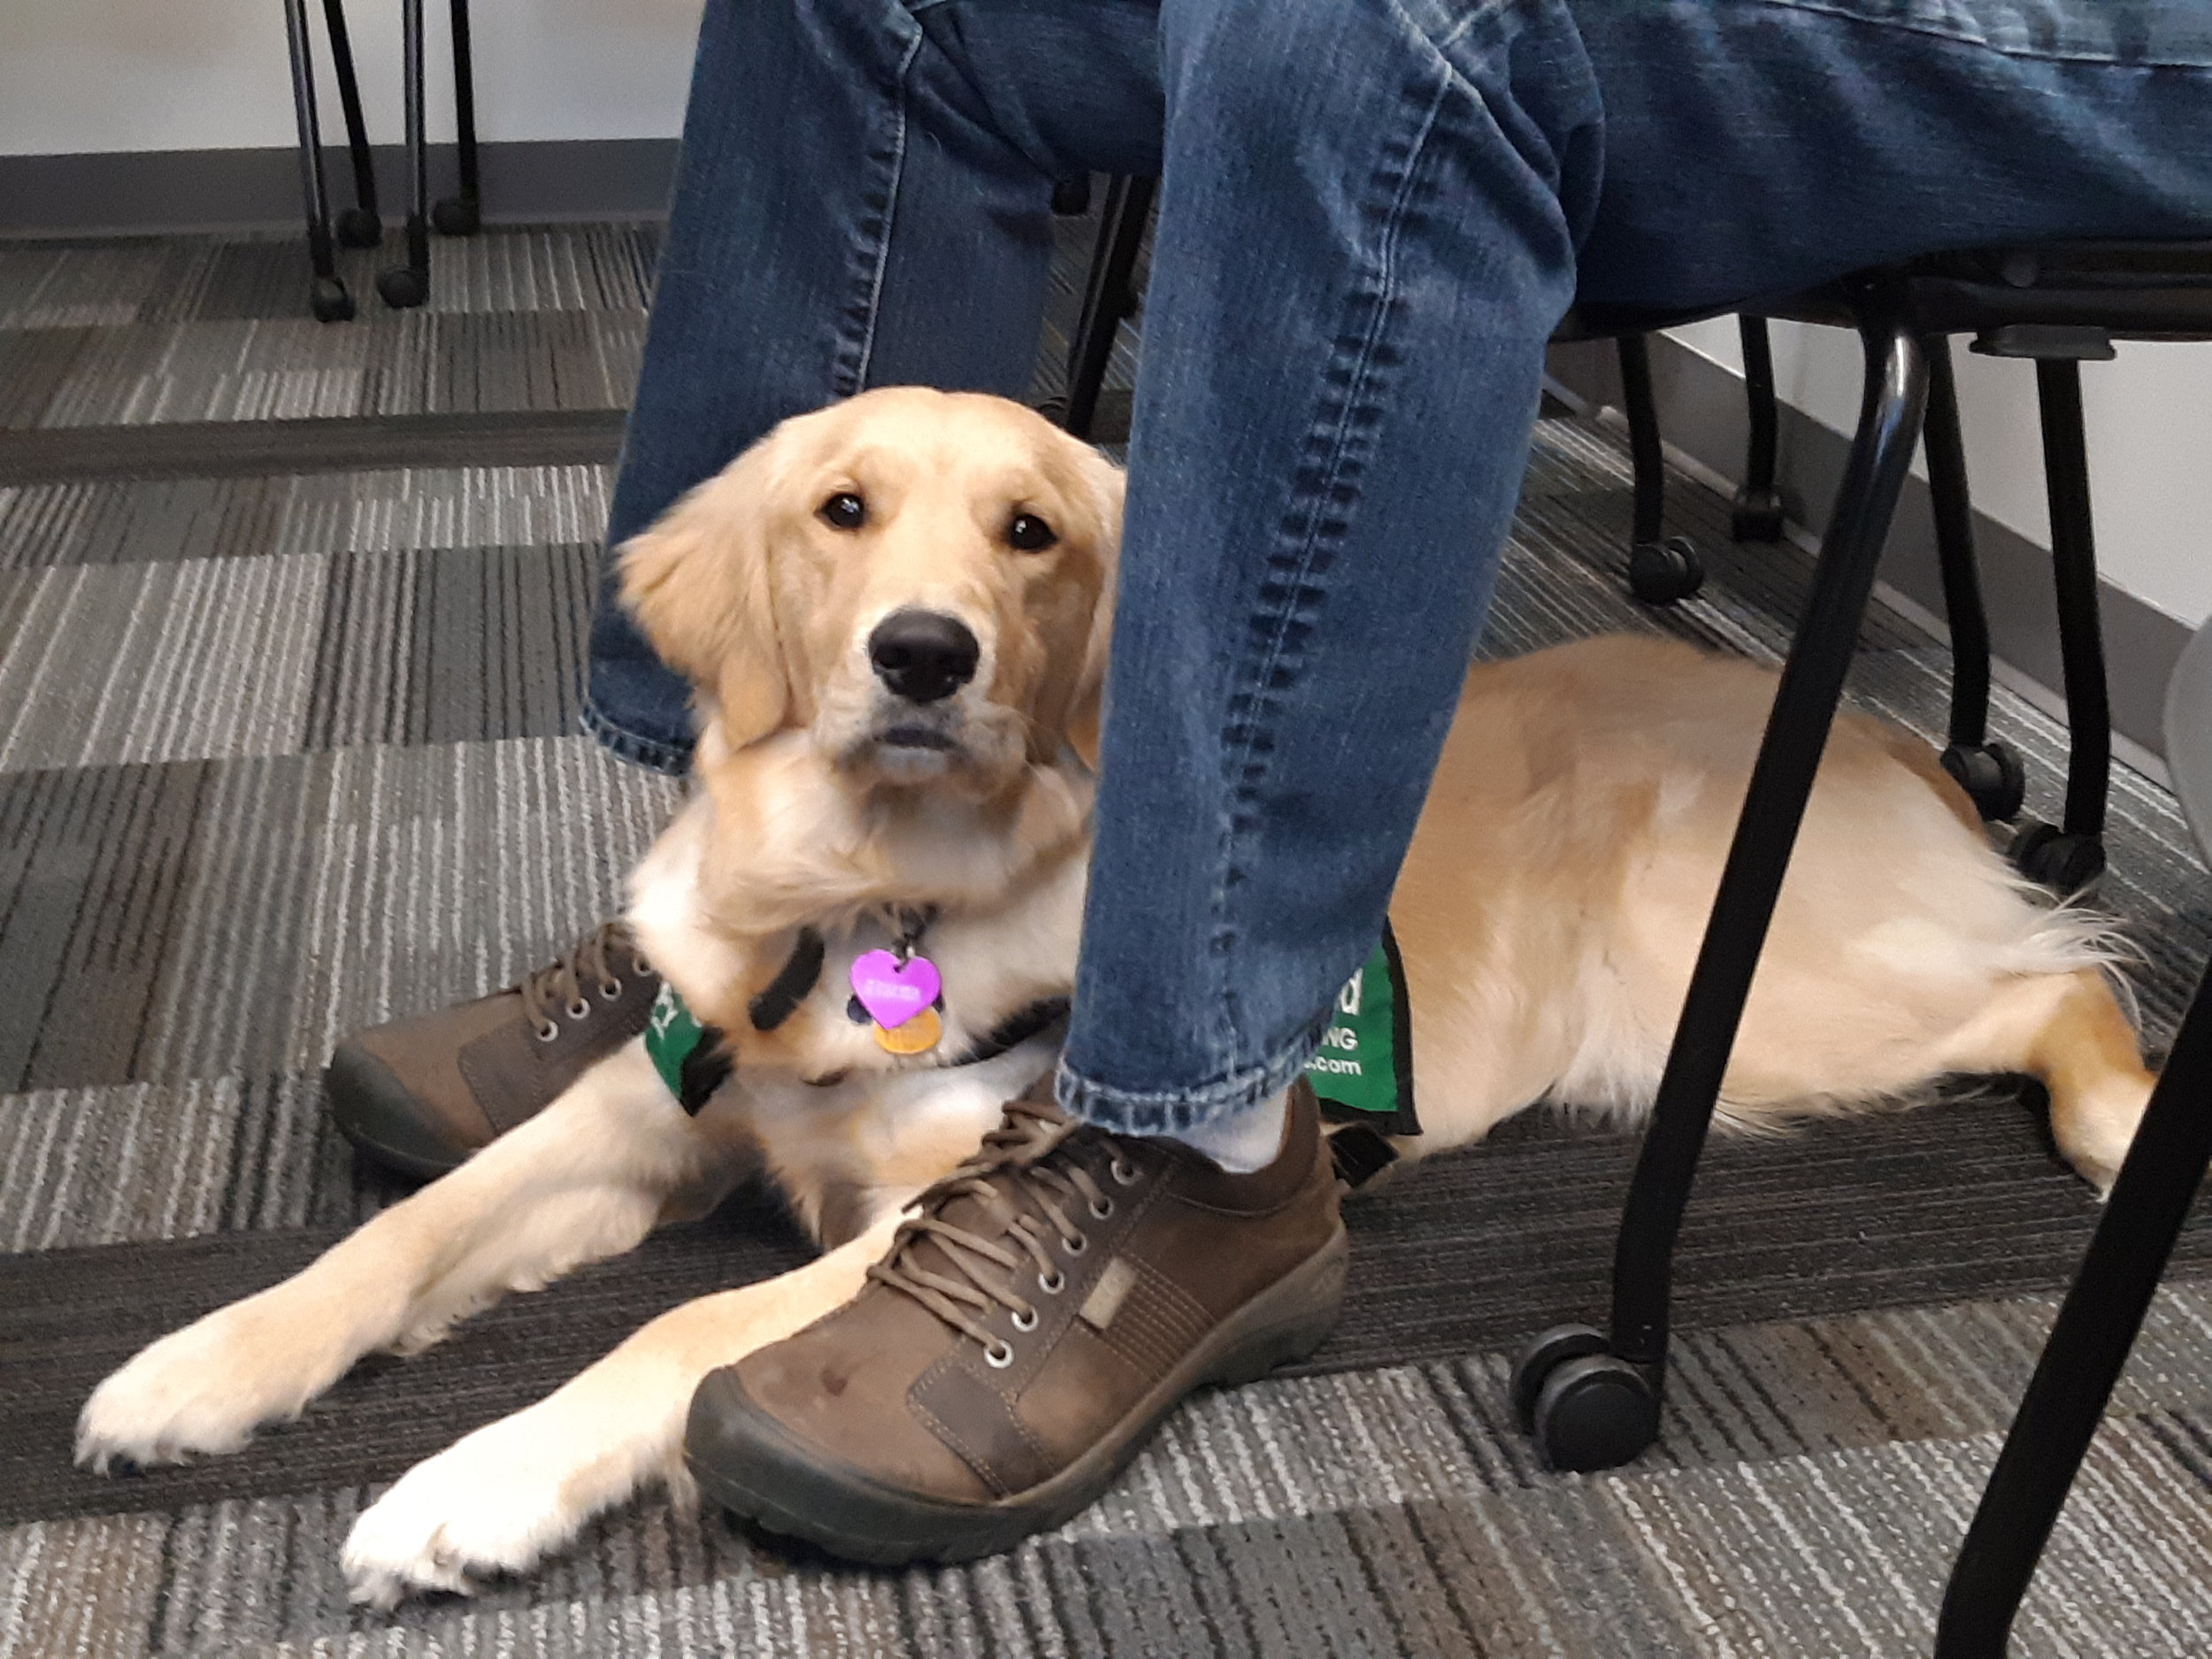 2019 02 28 - Norabelle's First Scheduling Meeting - Guide Dogs for the Blind.jpg